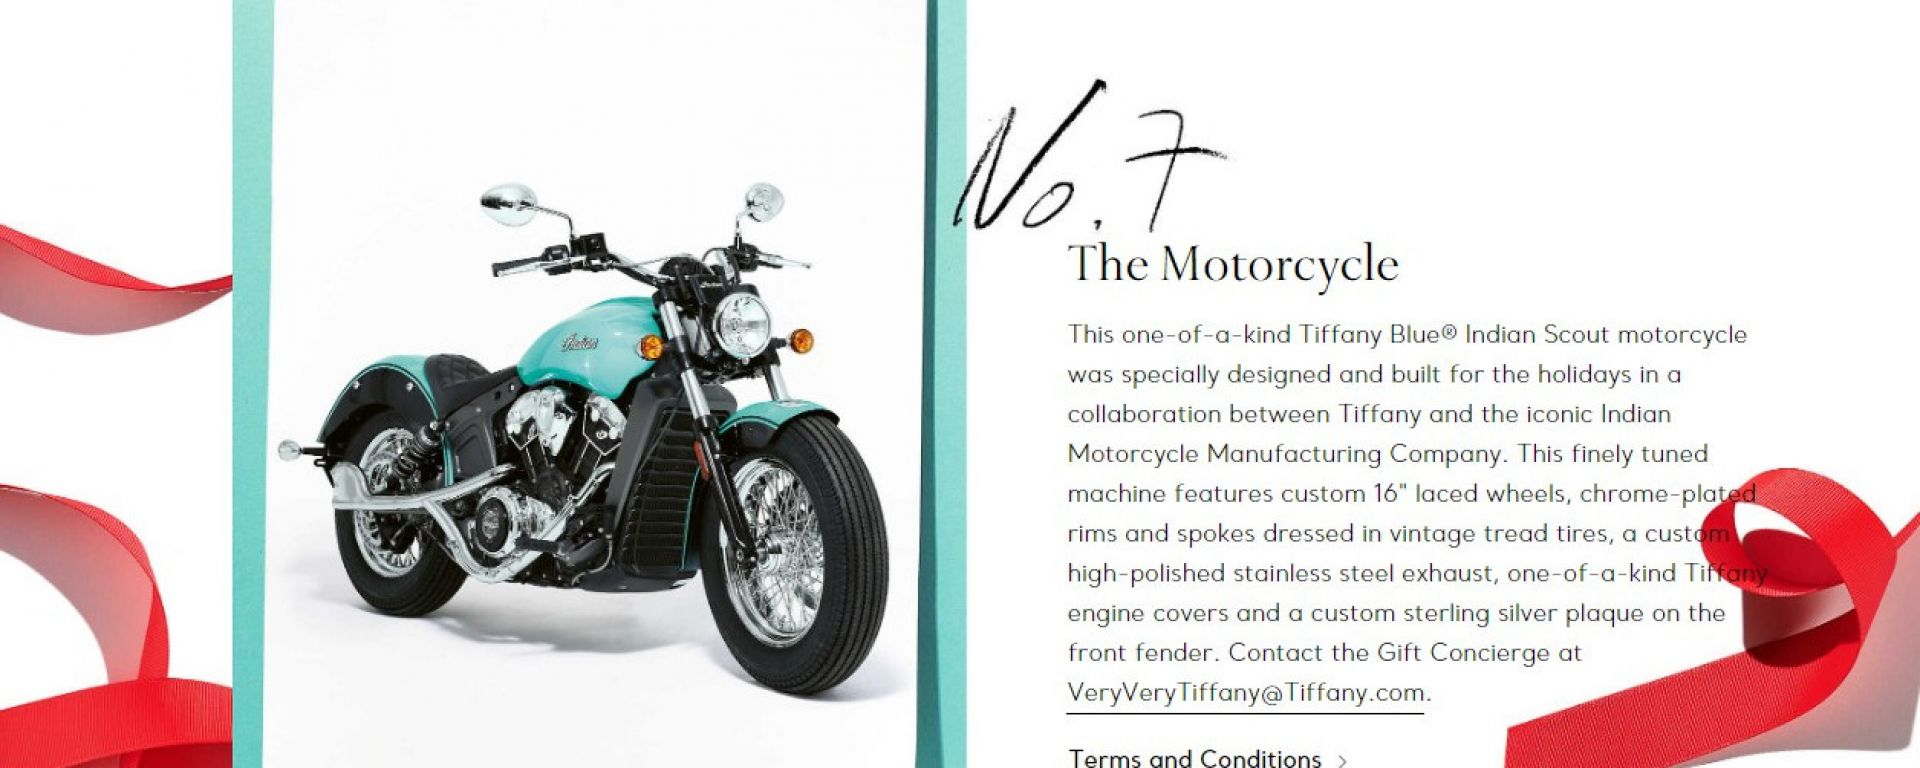 Indian Scout: la moto scelta per la special Tiffany & Co.